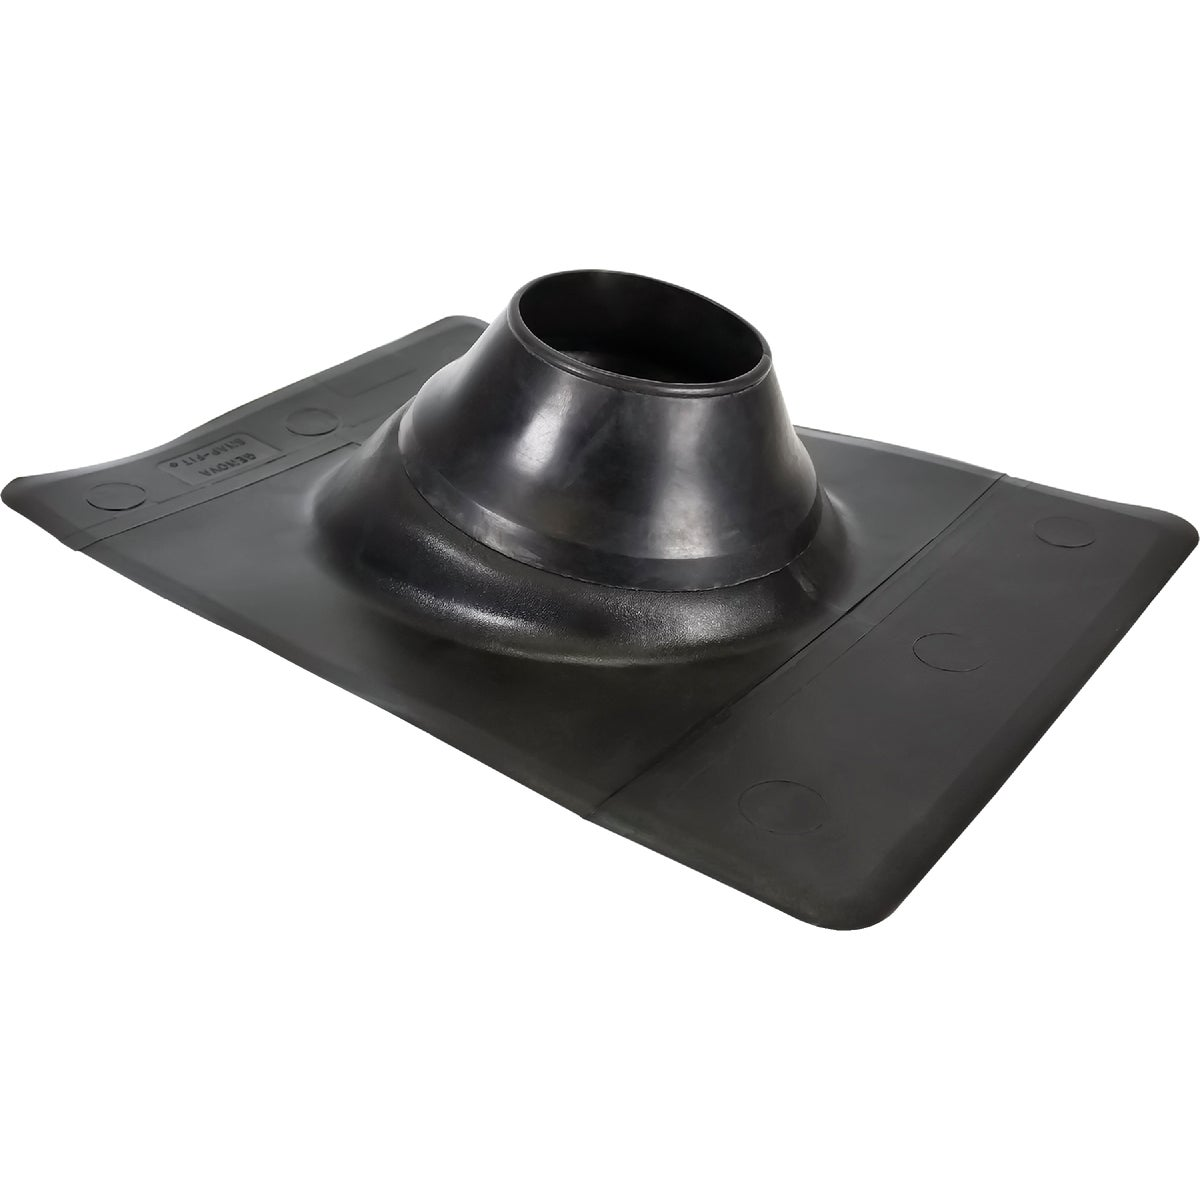 "1-1/4""THRM ROOF FLASHING - 14661 by Genova Inc"